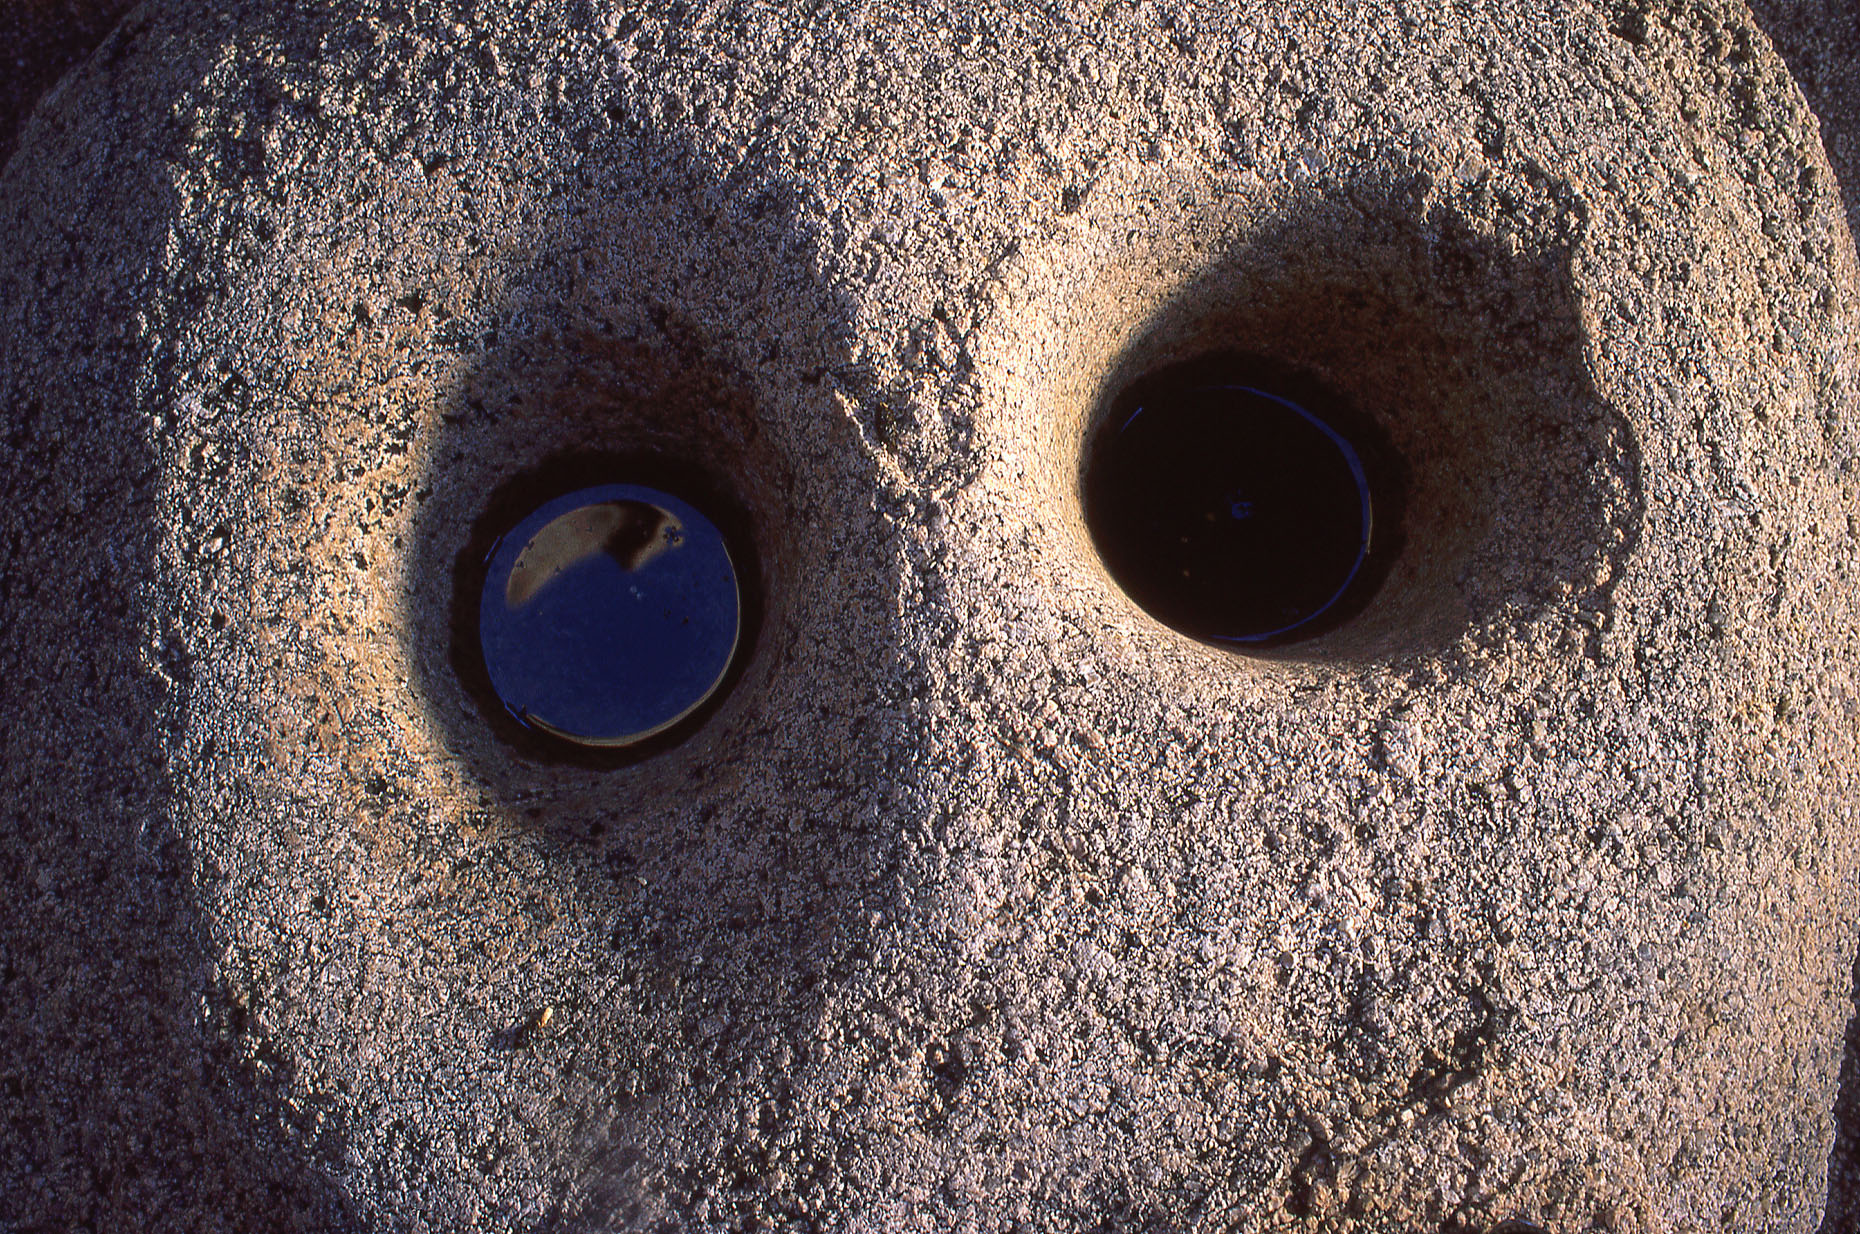 Bedrock mortars, John Annerino, Cochise Stronghold National Register of Historic Places, AZ, ancestral Mogollon